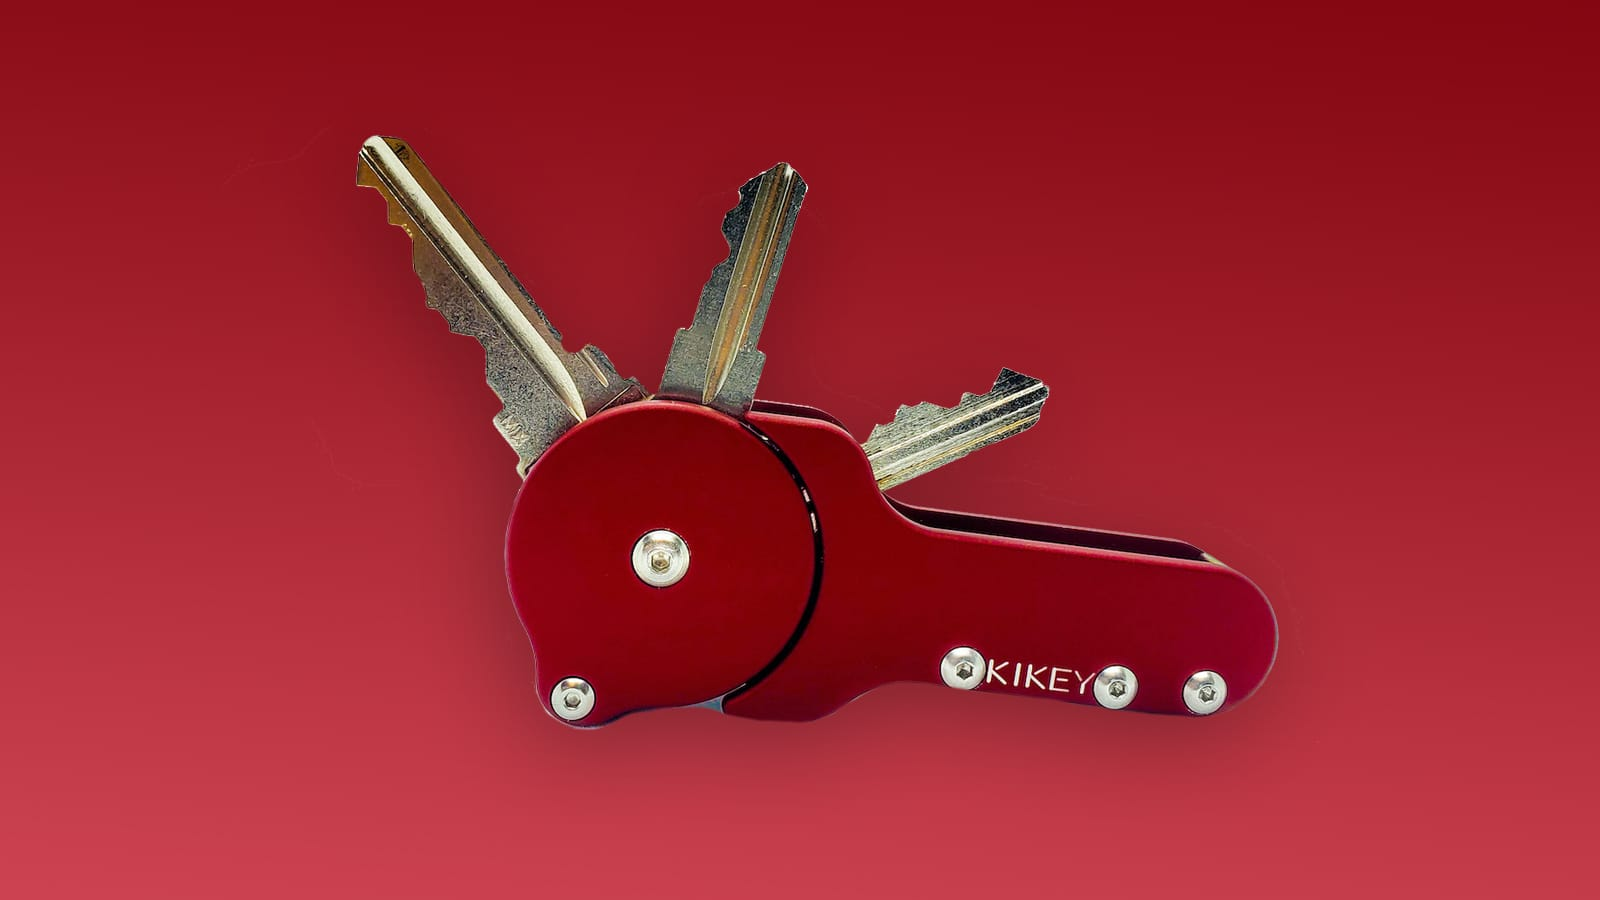 REELKEY key organizer opens easily with a swift flick of your finger